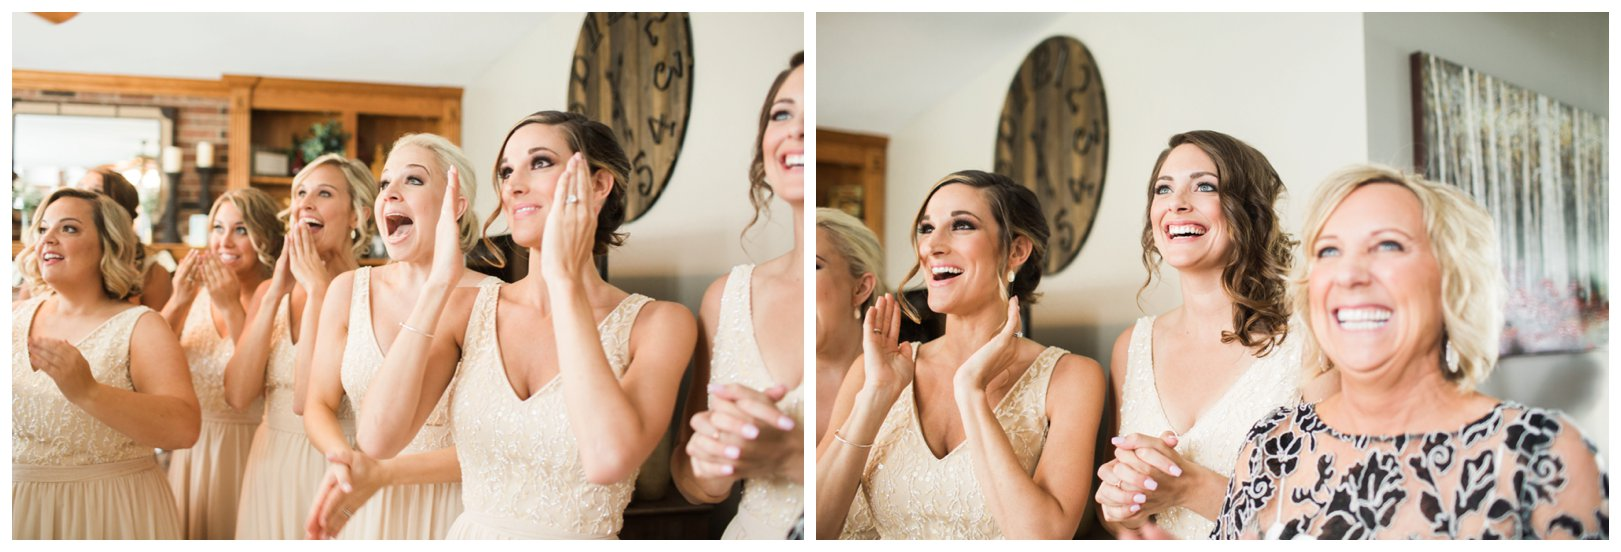 lauren muckler photography_fine art film wedding photography_st louis_photography_1056.jpg